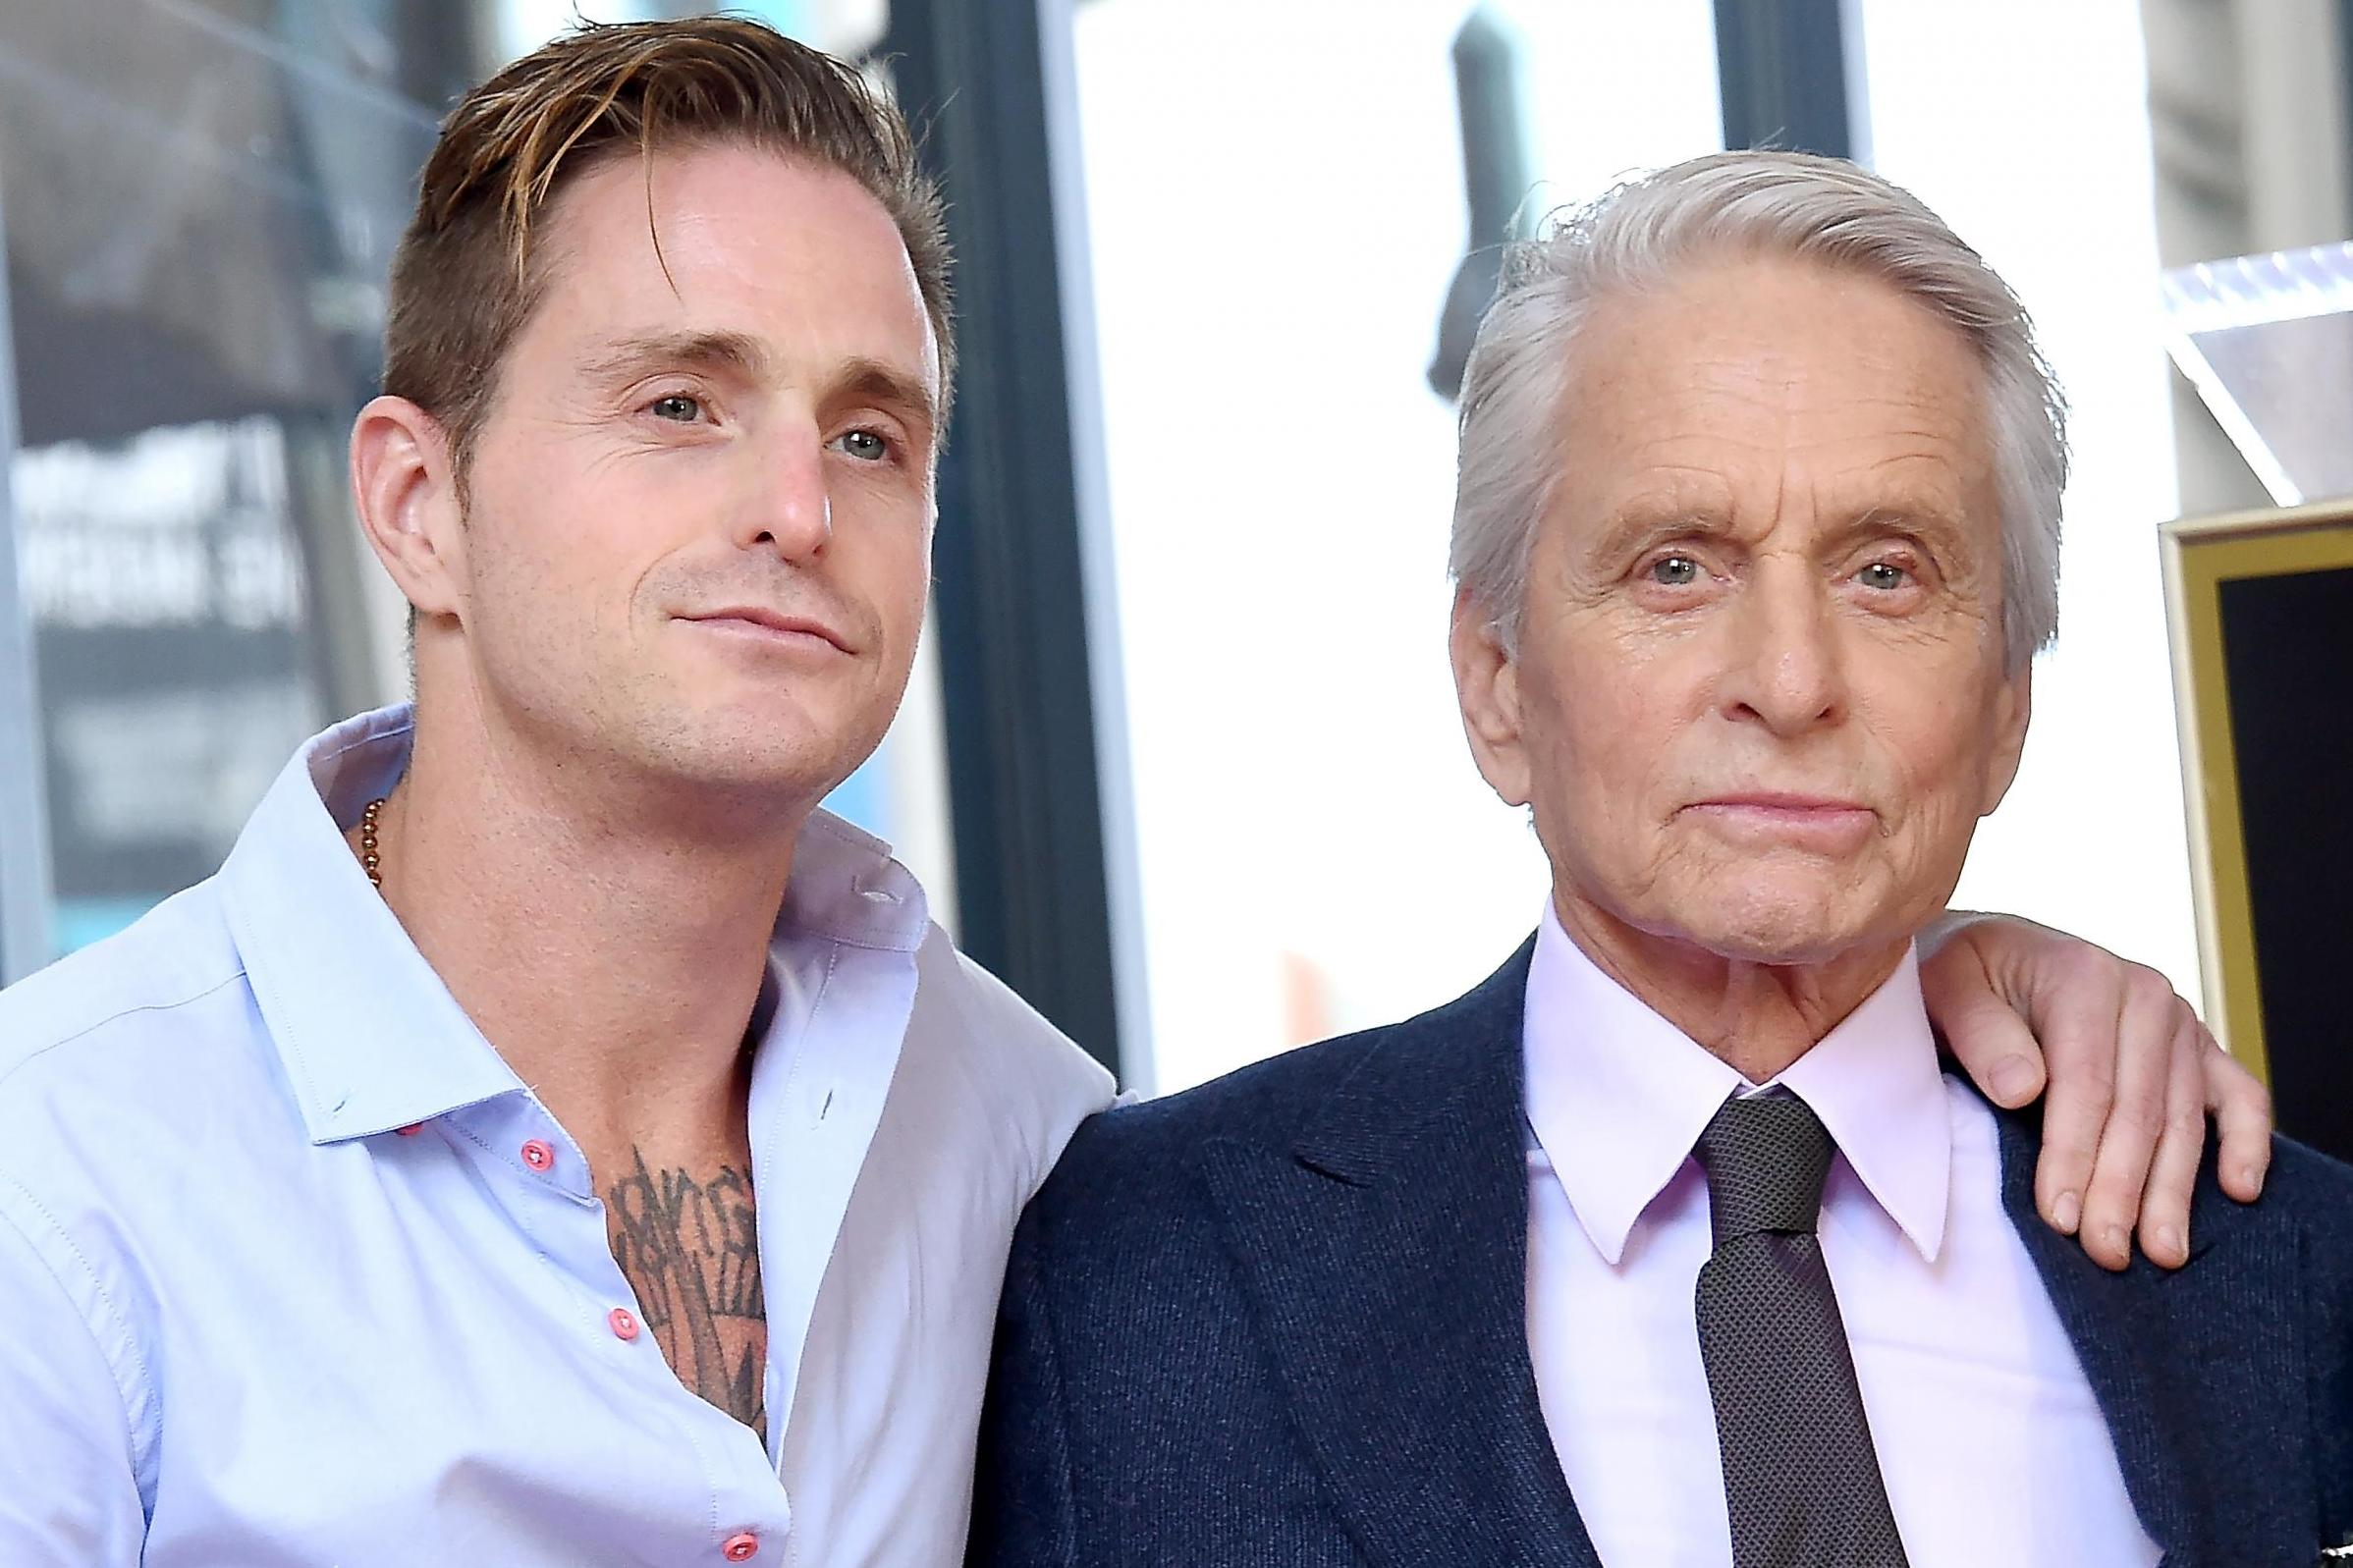 Cameron Douglas opens up about drug addiction that caused him to inject drugs into ribcage and neck